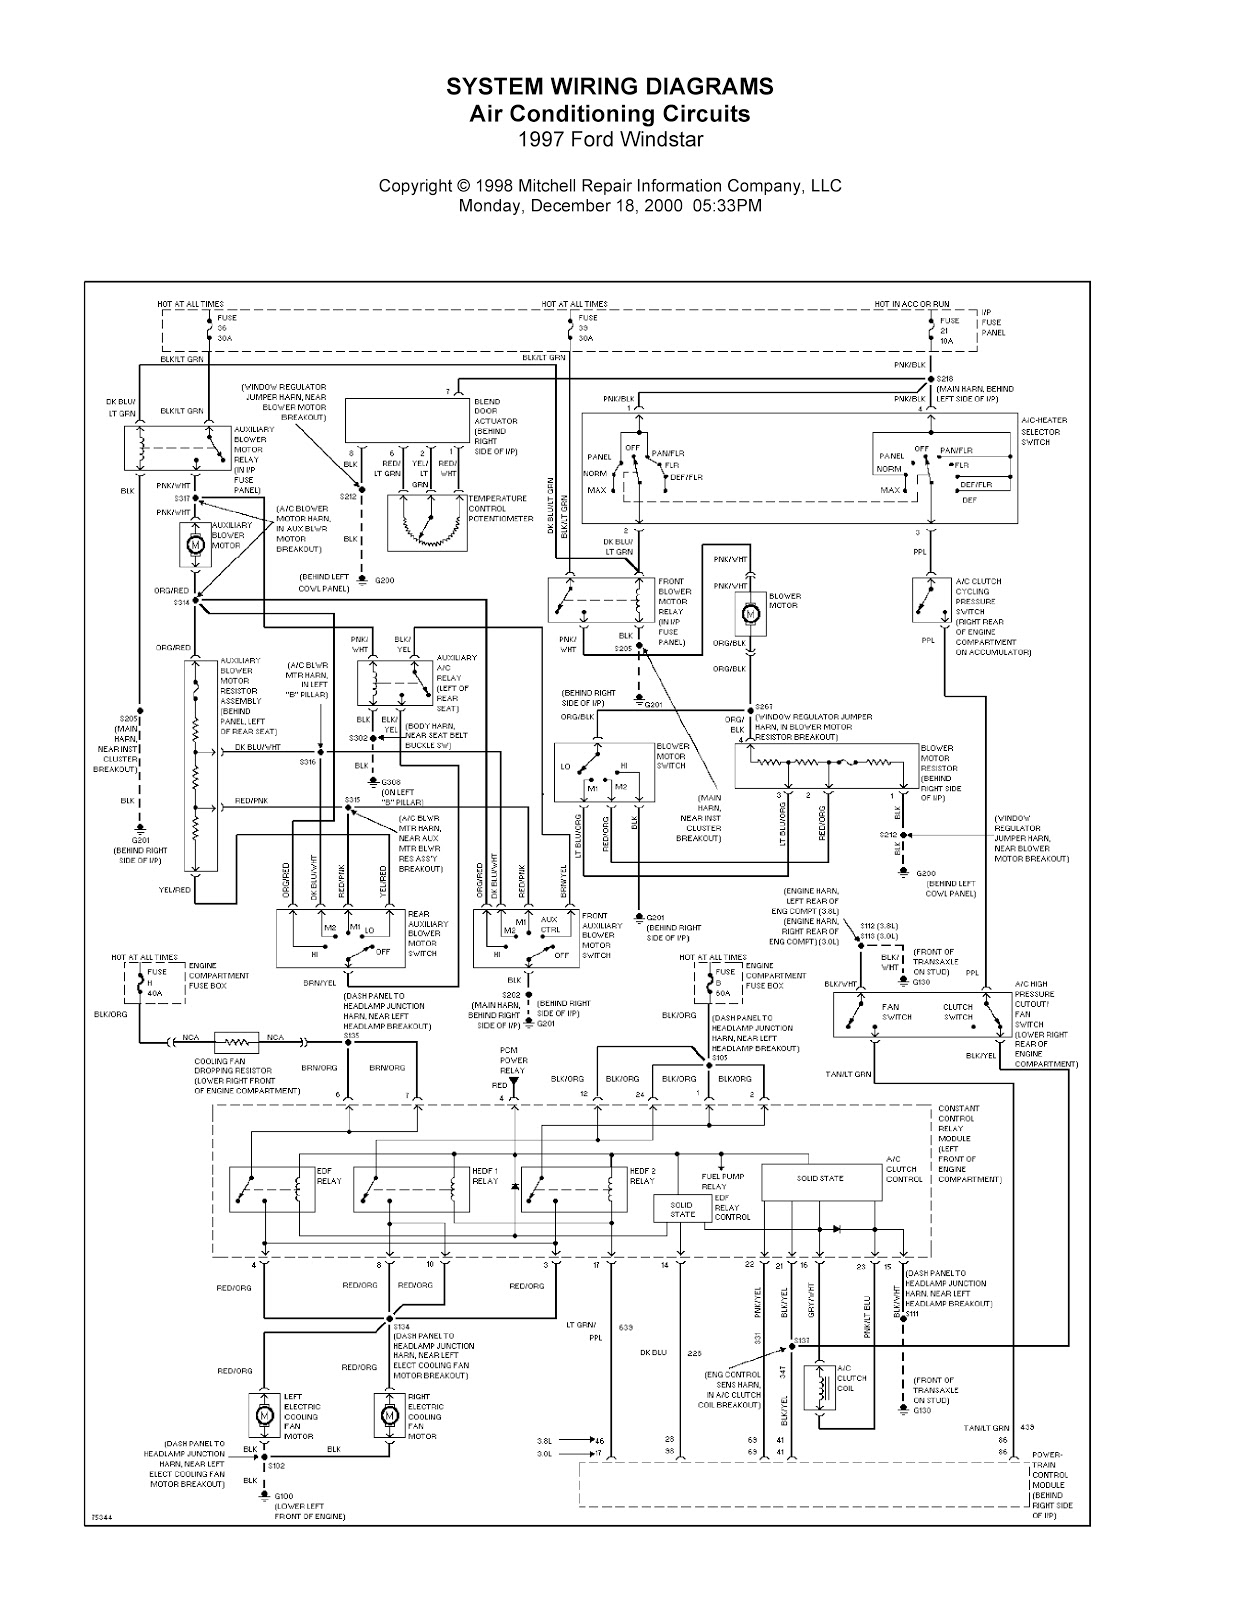 0001 1997 ford windstar complete system wiring diagrams wiring 2002 ford windstar radio wiring diagram at gsmx.co